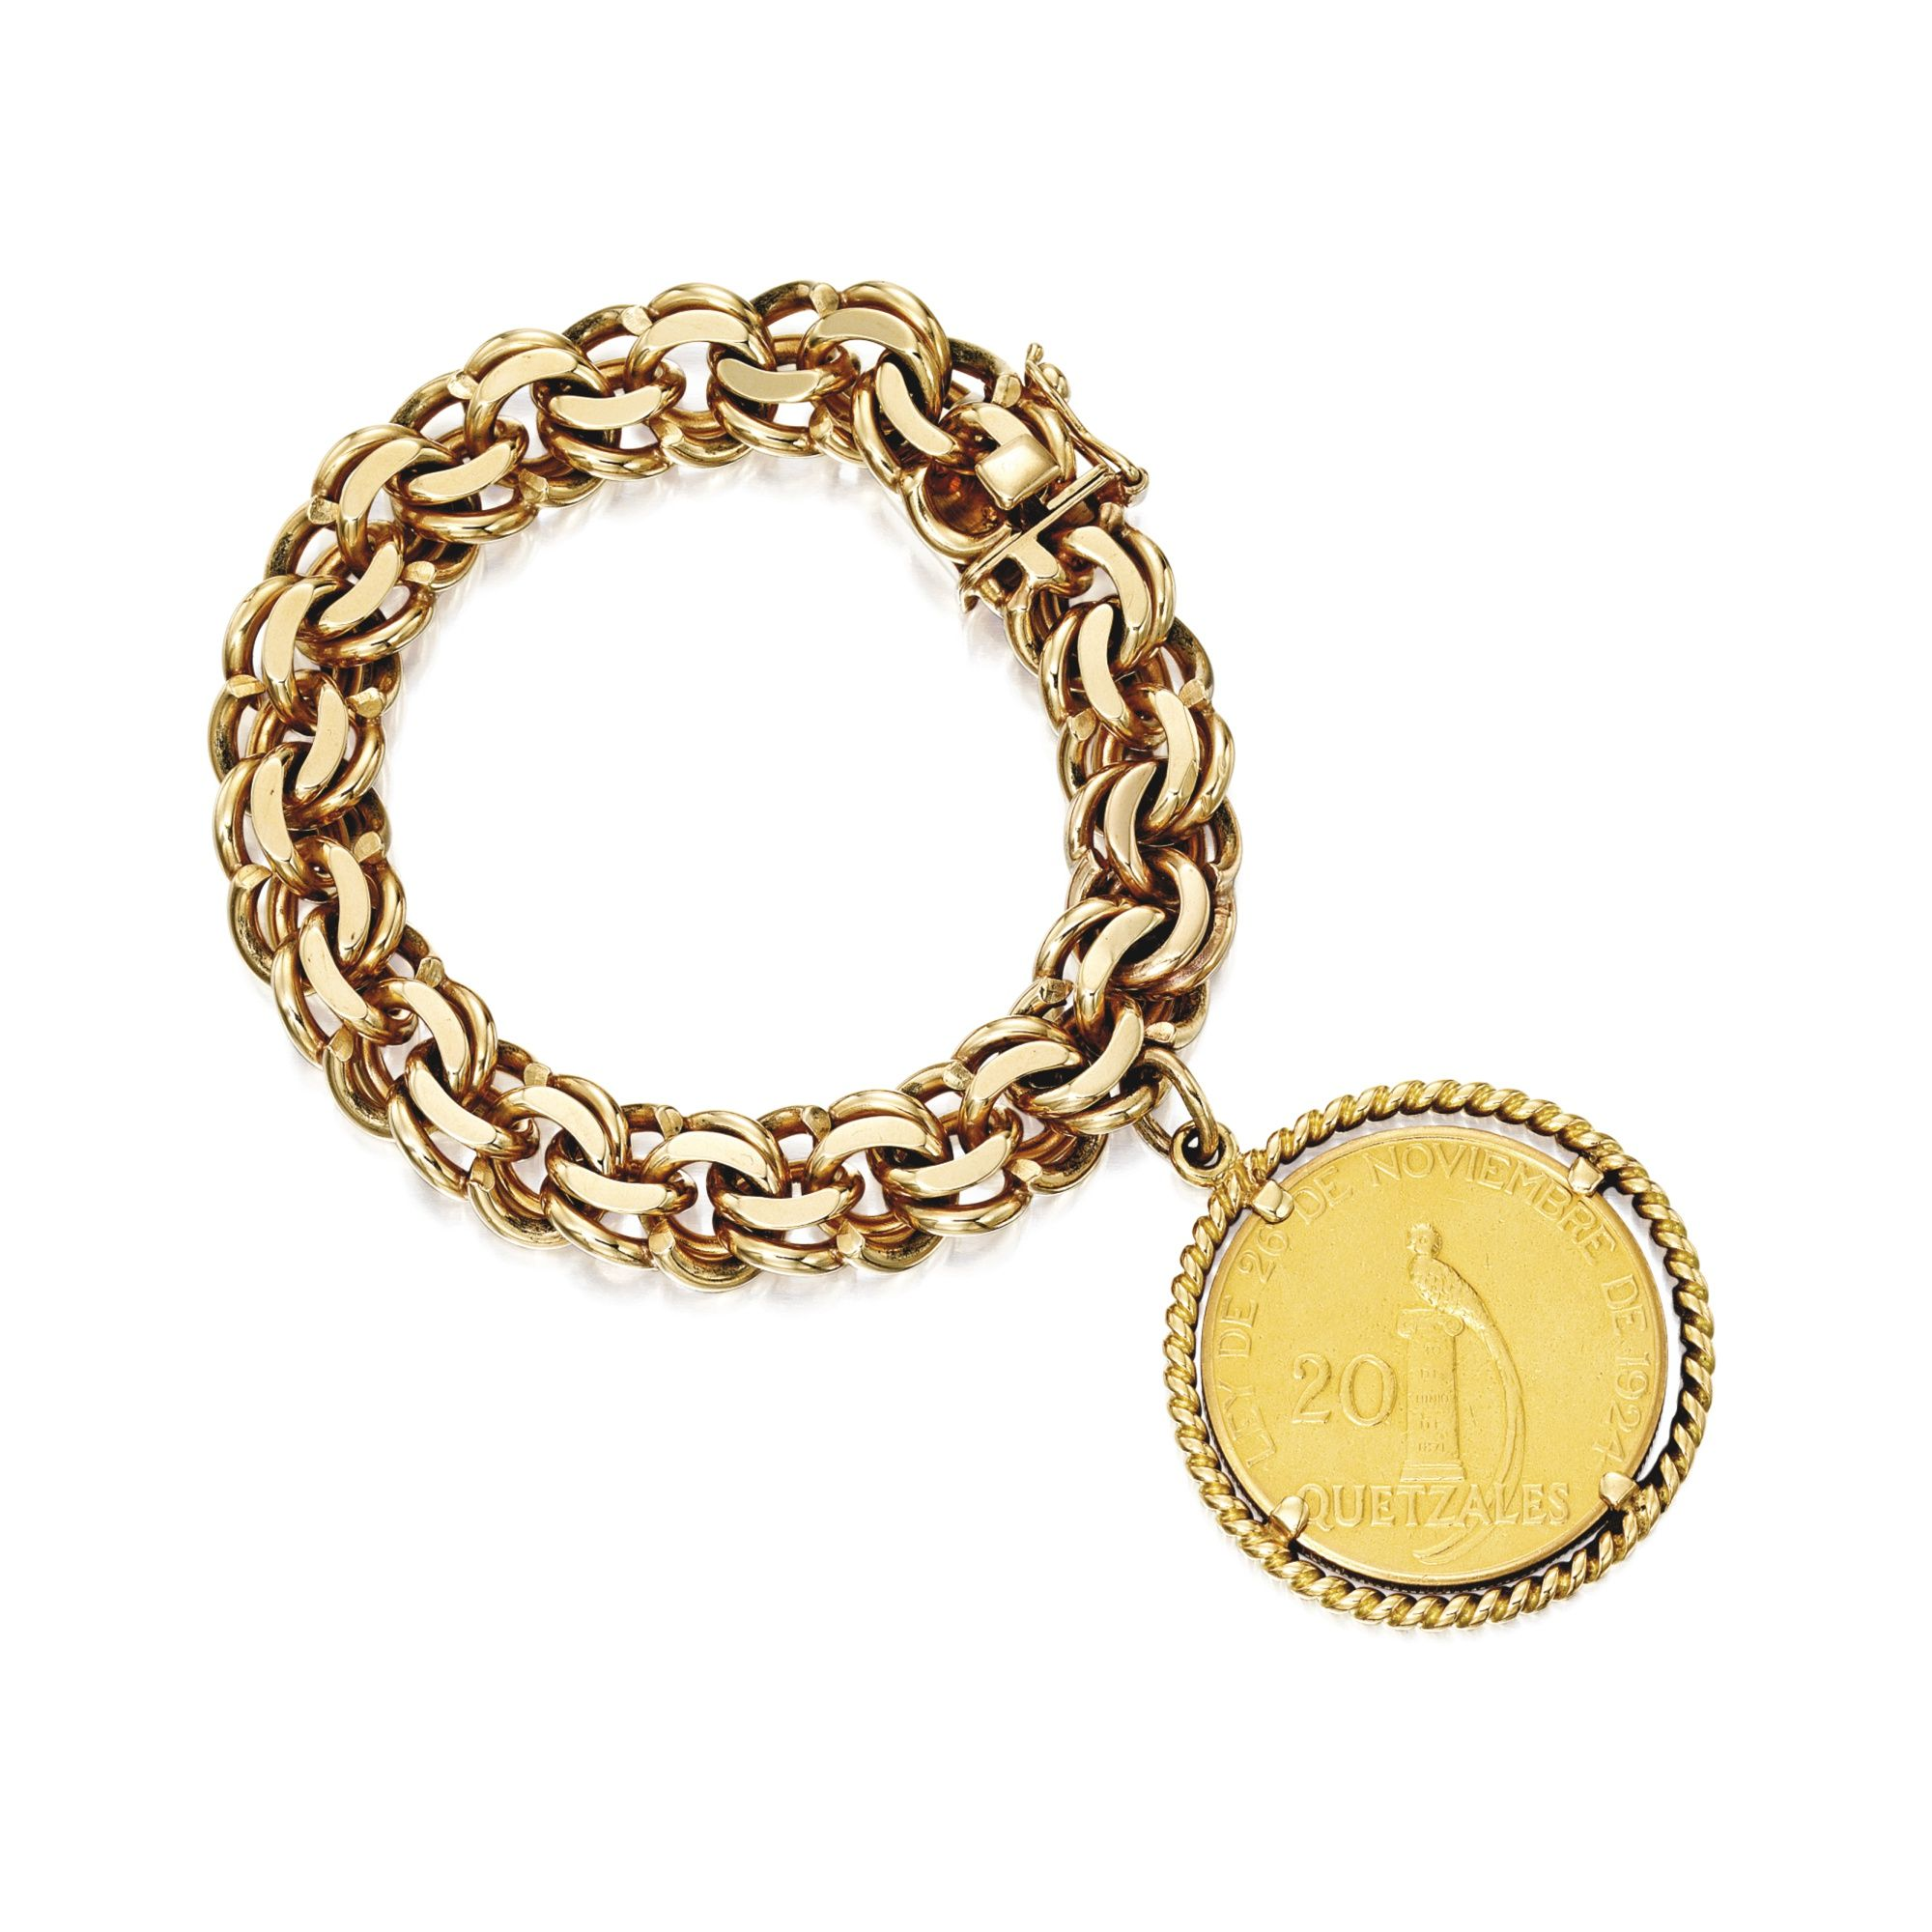 Gold Coin Bracelet, Cartier The gold chain-link bracelet suspending